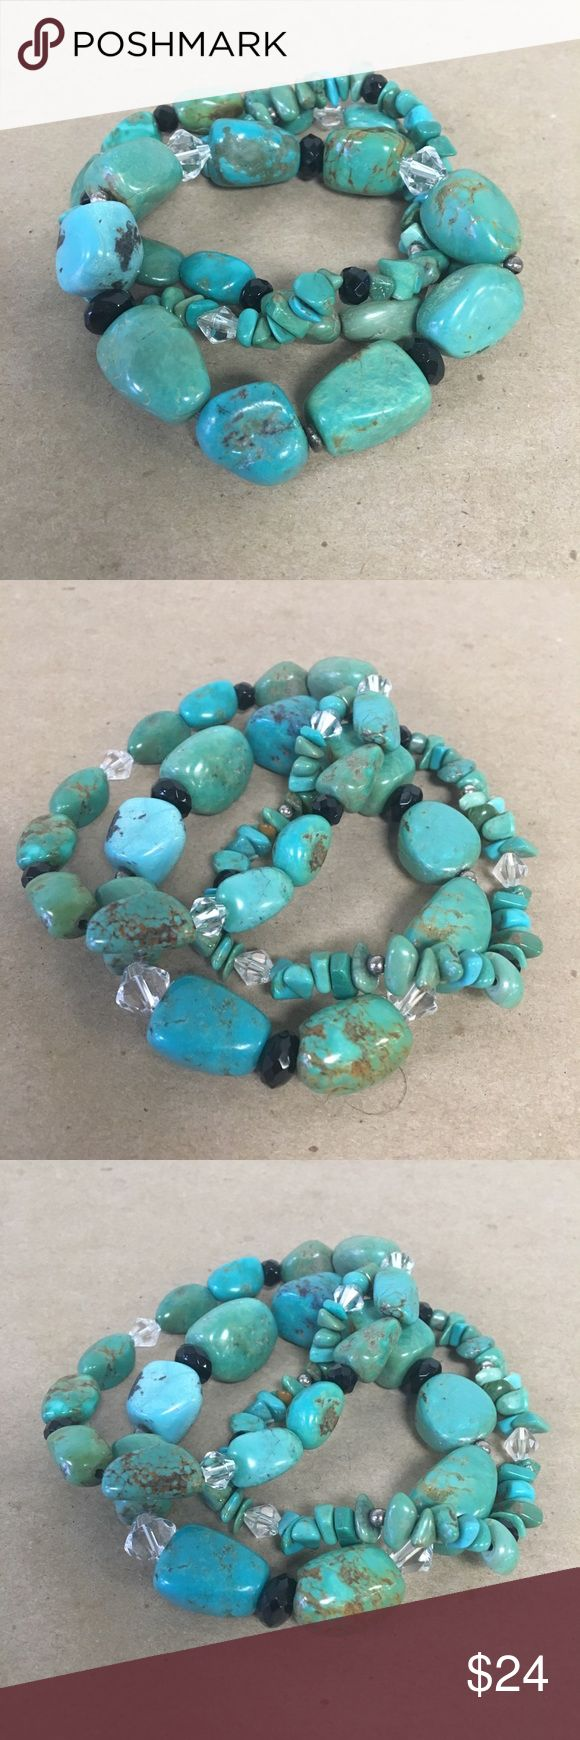 Silpada 3 Turquoise Bracelet Set Silpada 3 Turquoise Bracelet Set - Perfect Condition, Orig. $99 Inventory #  4390-113 Everything we sell is 100% guaranteed authentic! We list dozens of items every day, so check our other listings out! We are Meta Exchange, a resale store in Baton Rouge, LA! Sorry, no trades. REASONABLE offers will be considered. We ship same/next day. Thanks! Follow us: FB metaexchange  IG meta225 Silpada Jewelry Bracelets